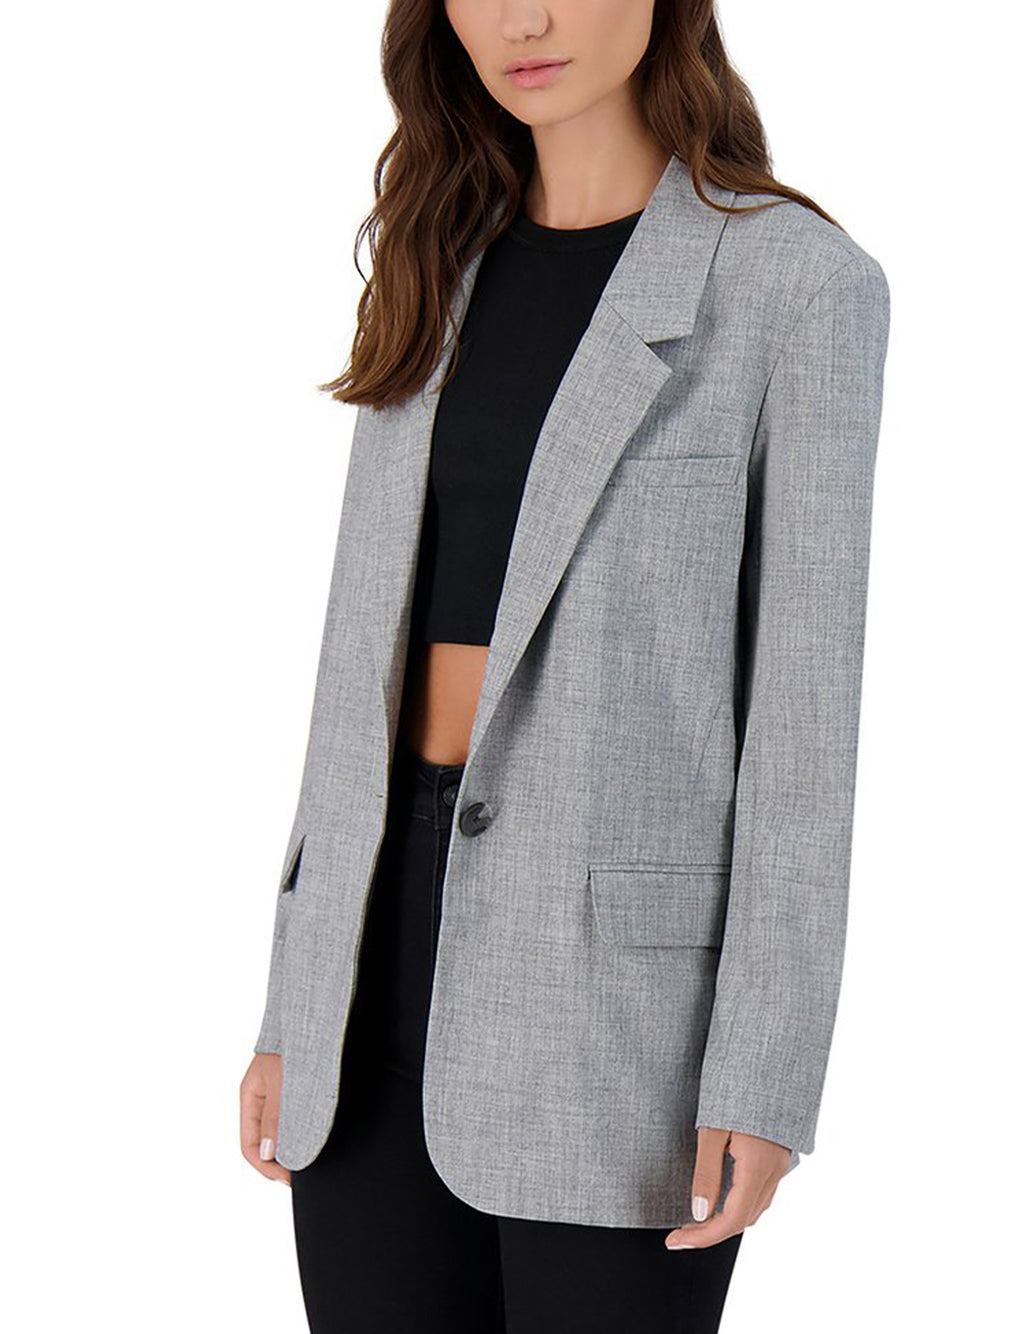 BB Dakota Making Moves Blazer in Grey